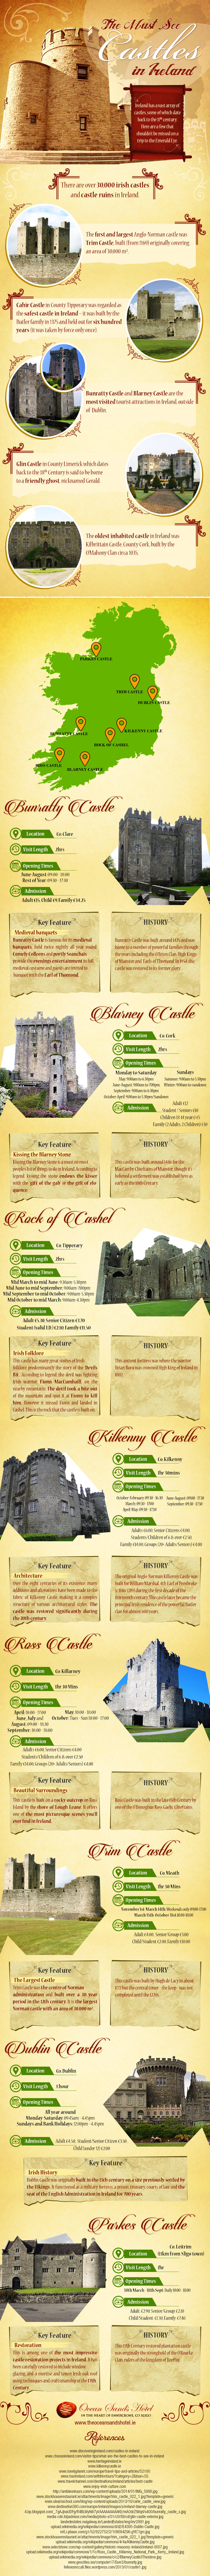 Best Castles to See in Ireland - Travel Infographic